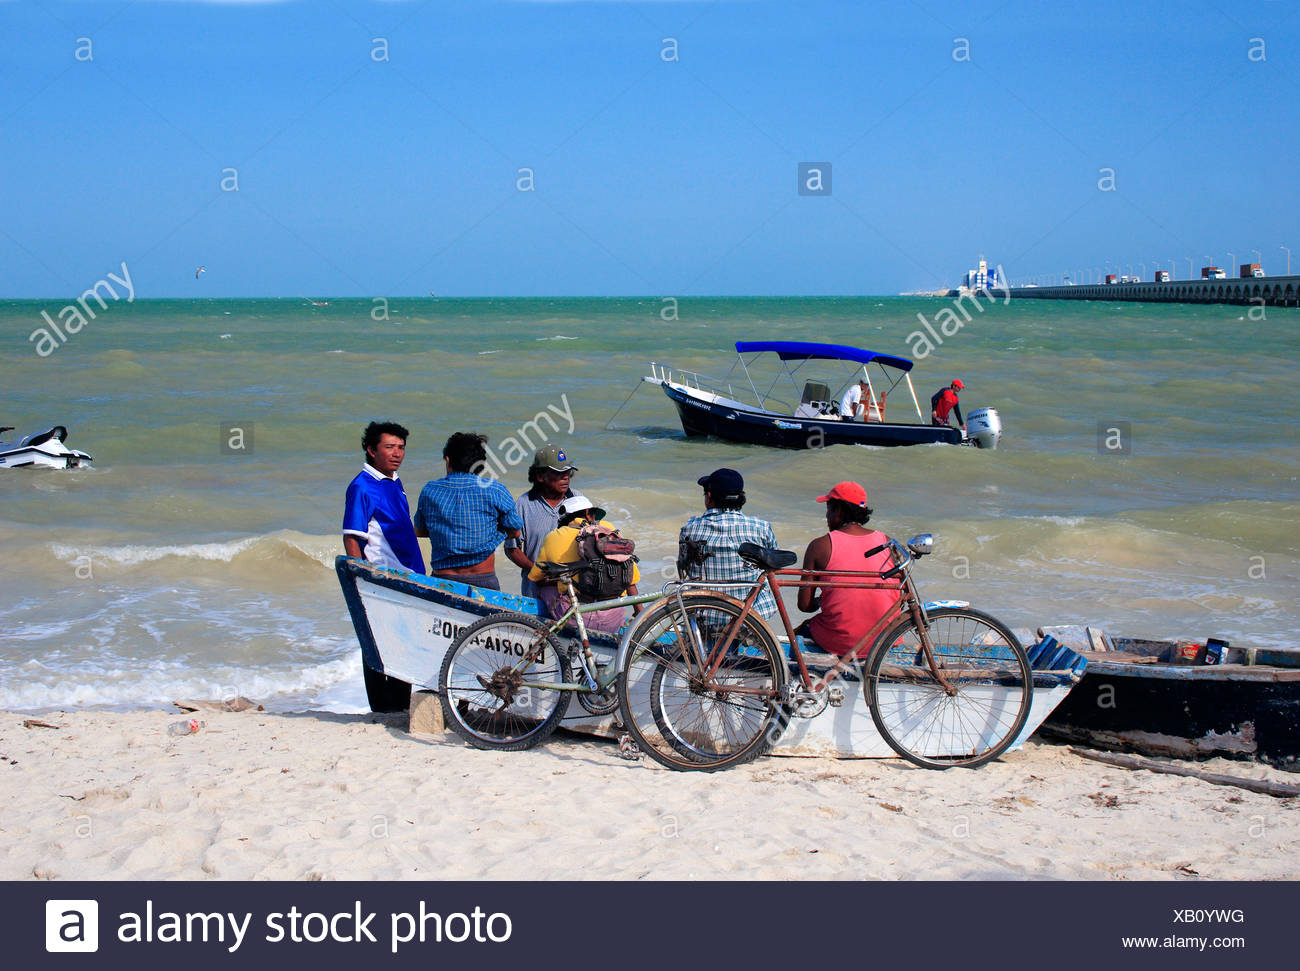 Beach ; Local people ; Bicycle ; Progresso ; Mexico - Stock Image